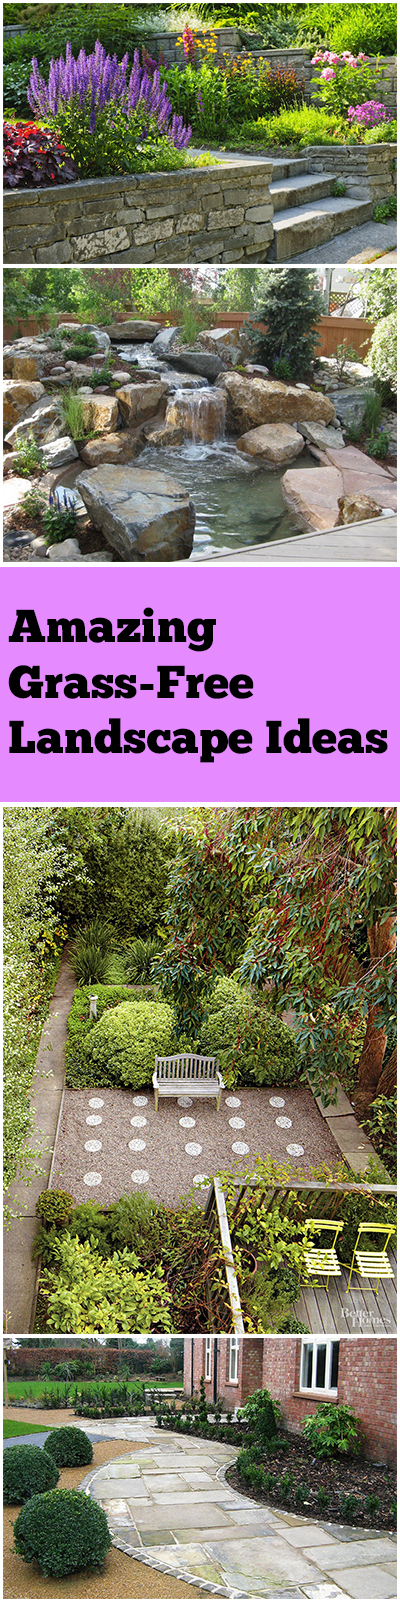 Amazing Grass-Free Landscape Ideas